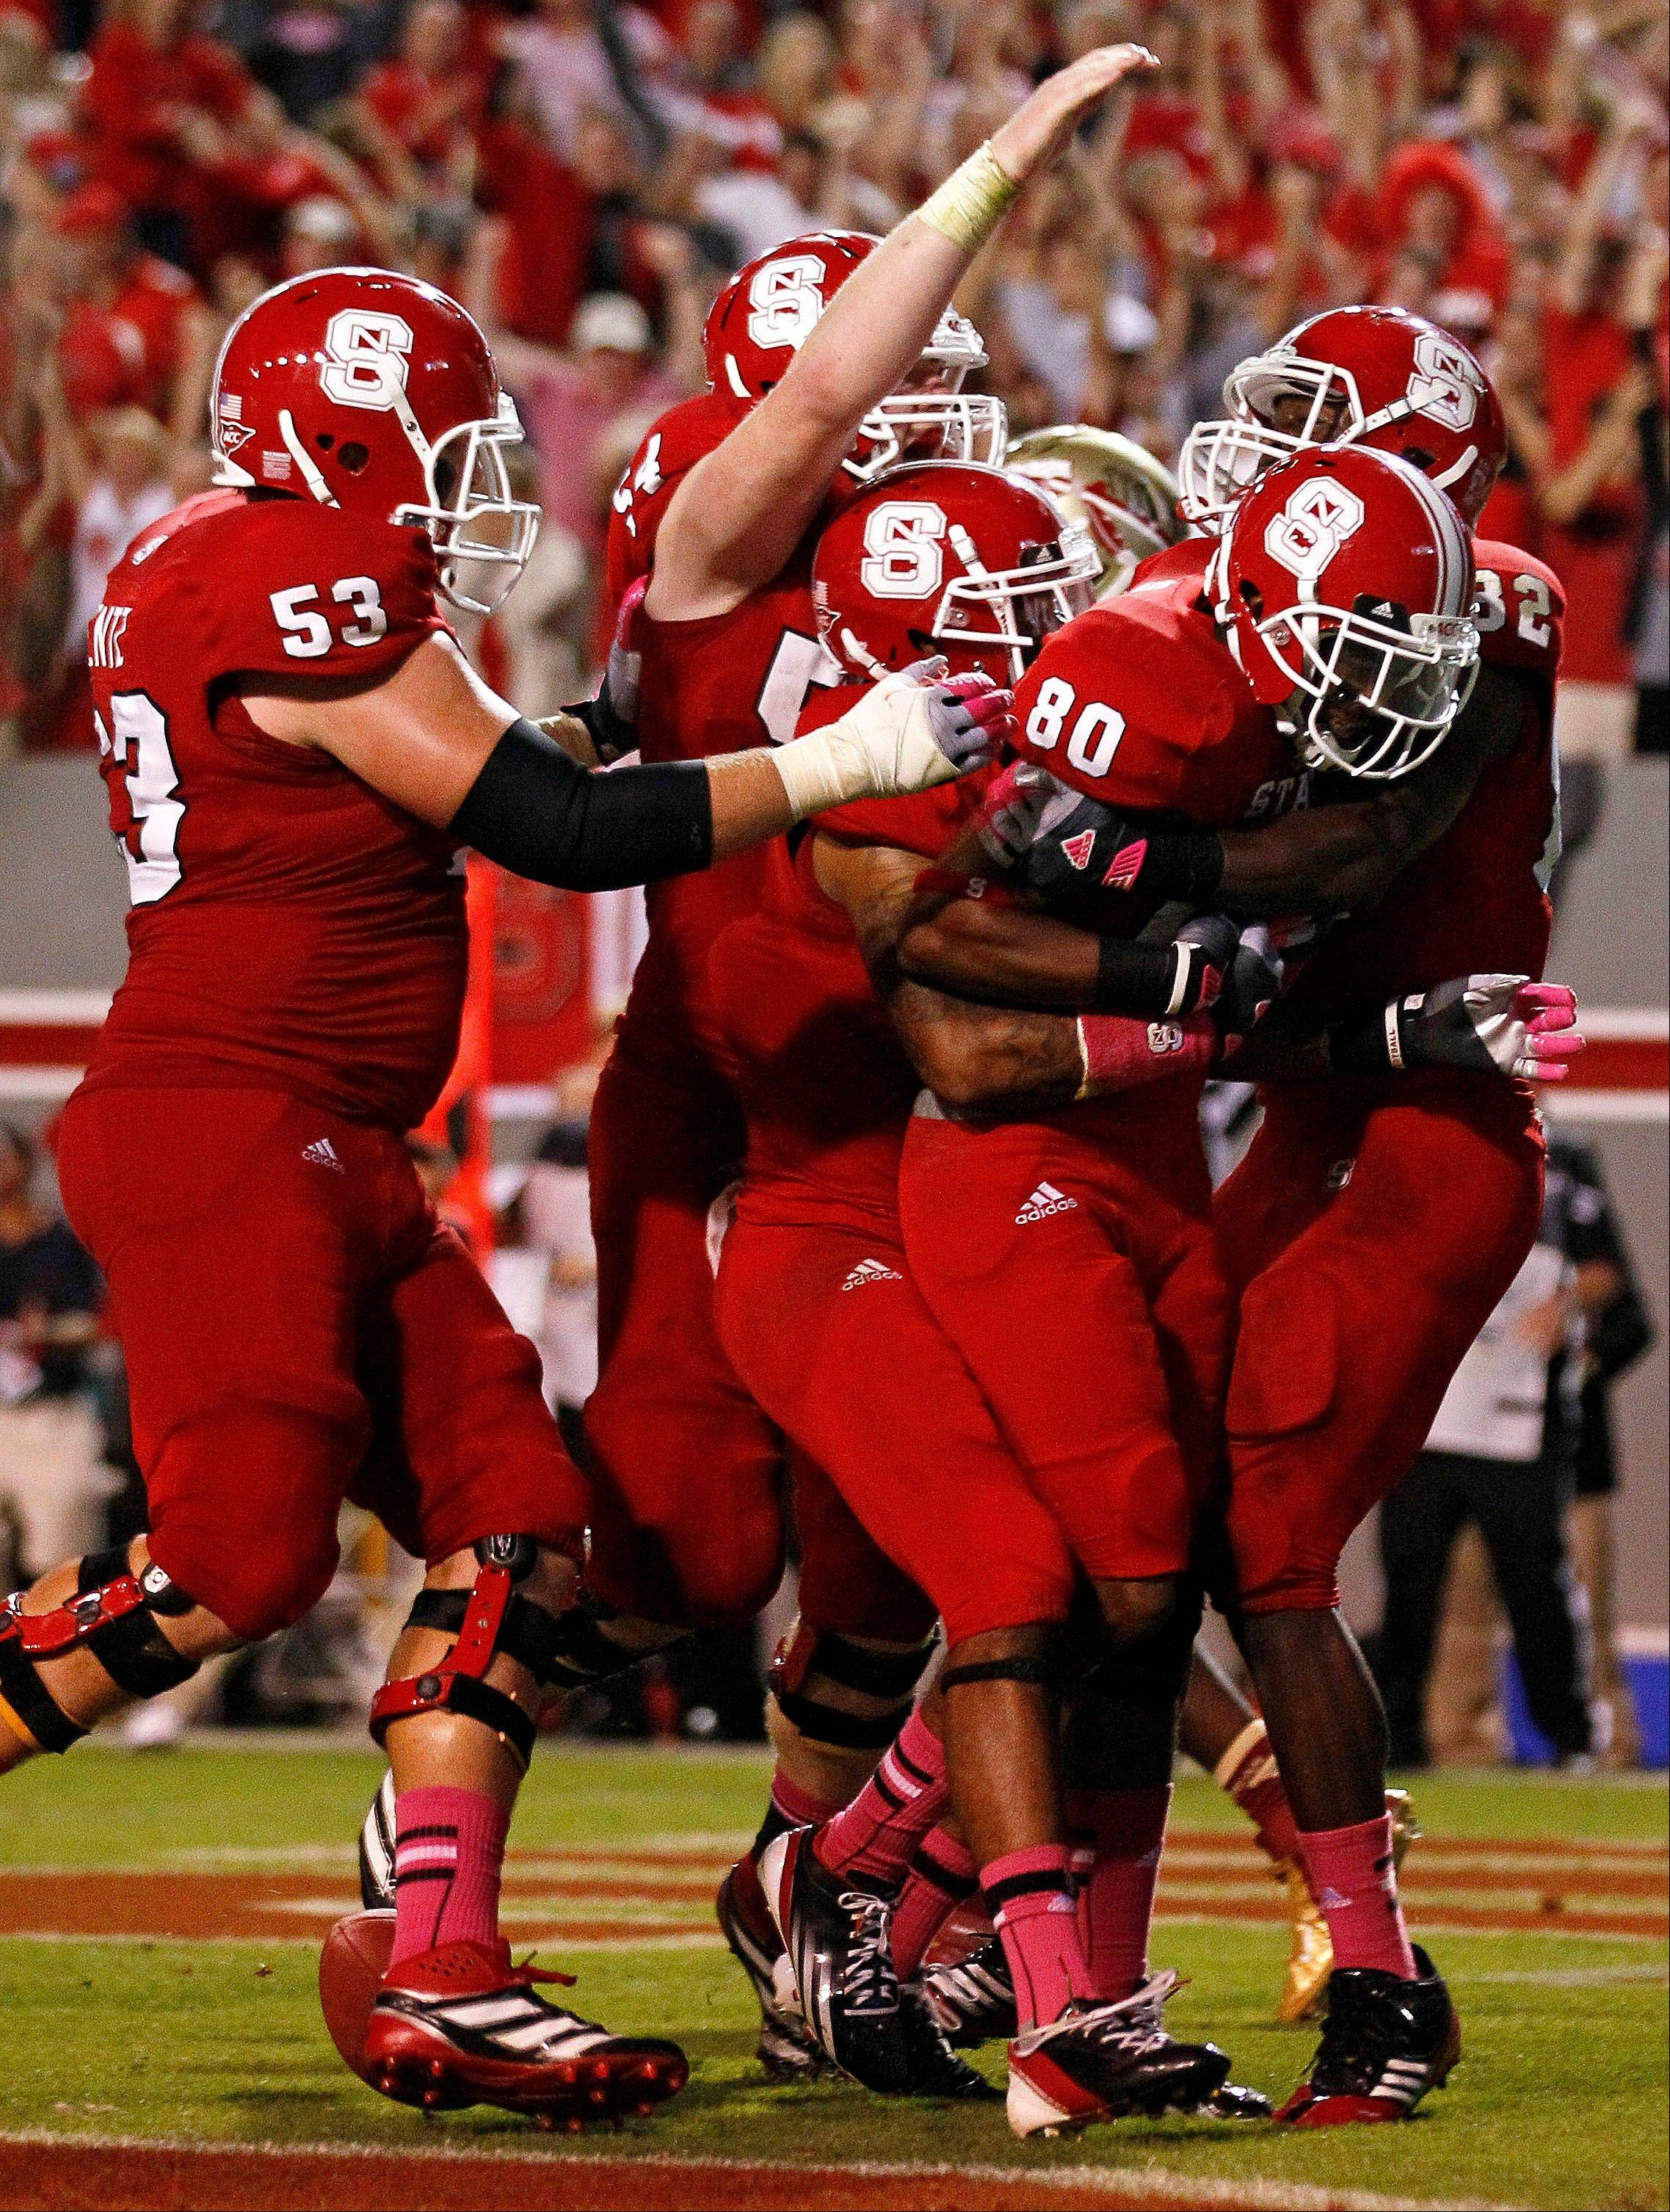 North Carolina State's Bryan Underwood (80) is congratulated by teammates after his touchdown to tie the game late in the second half Saturday against Florida State in Raleigh, N.C.